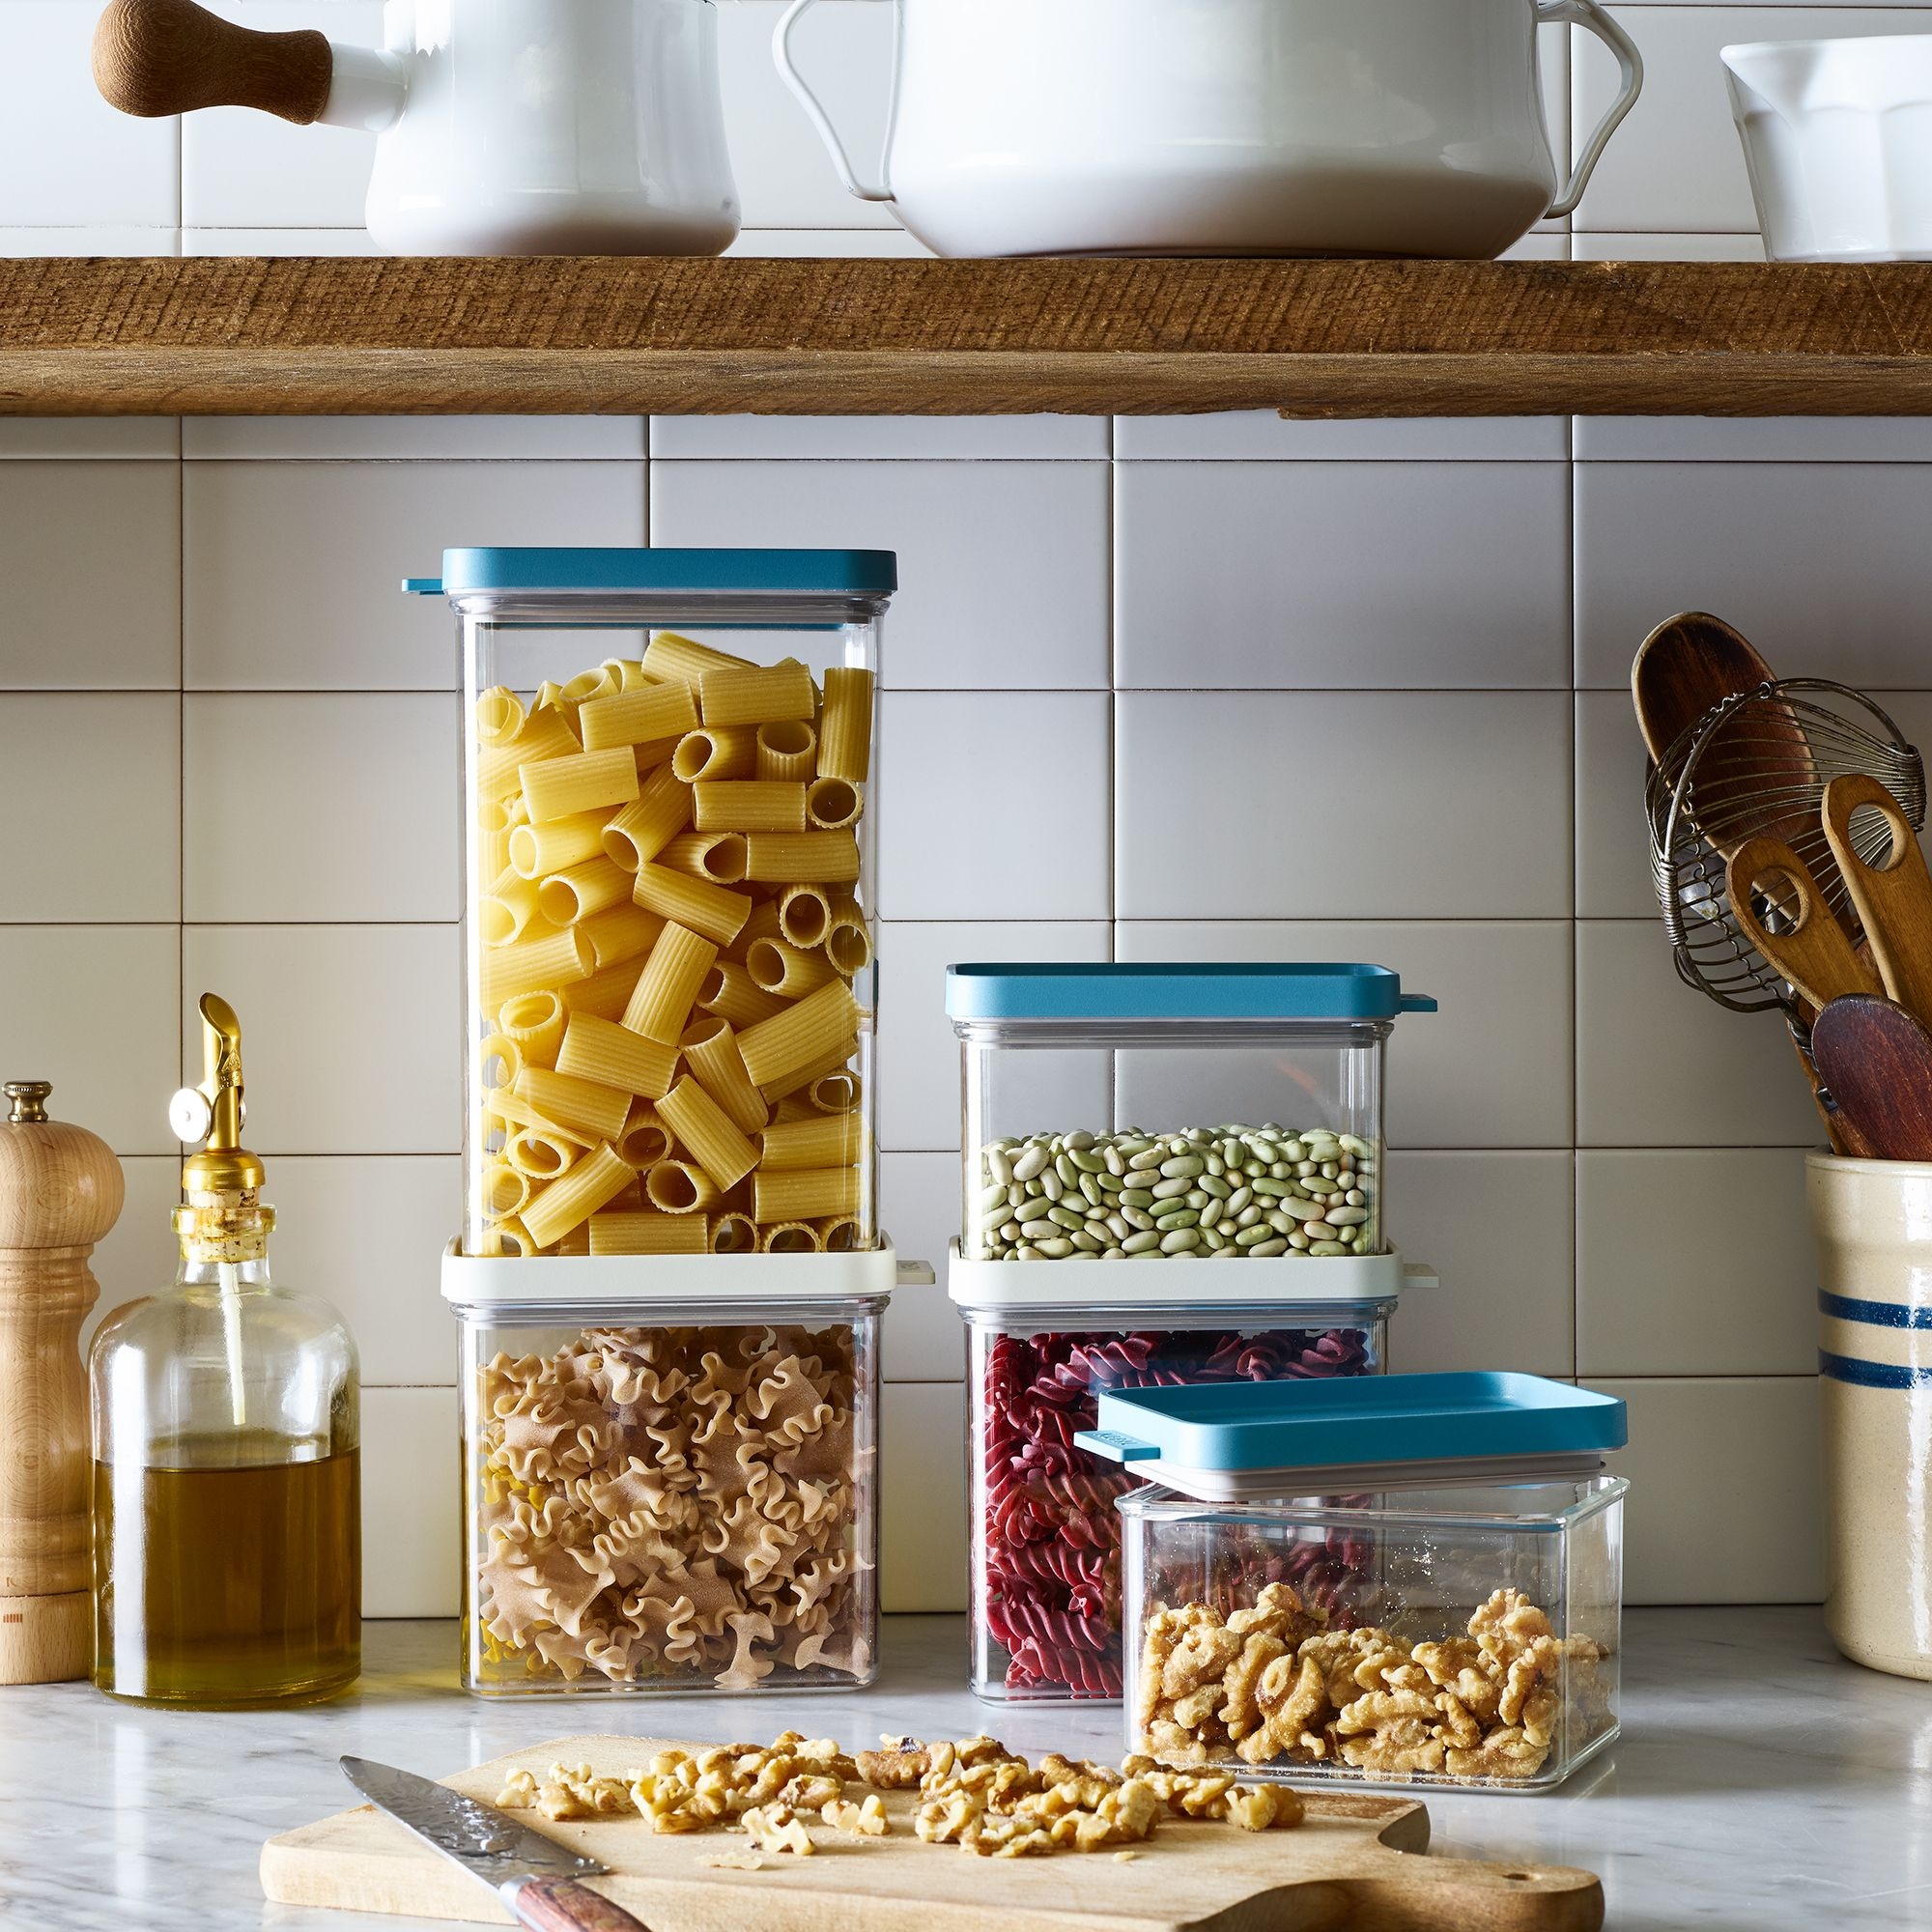 Airtight Stackable Storage Containers (Set of 3)$46